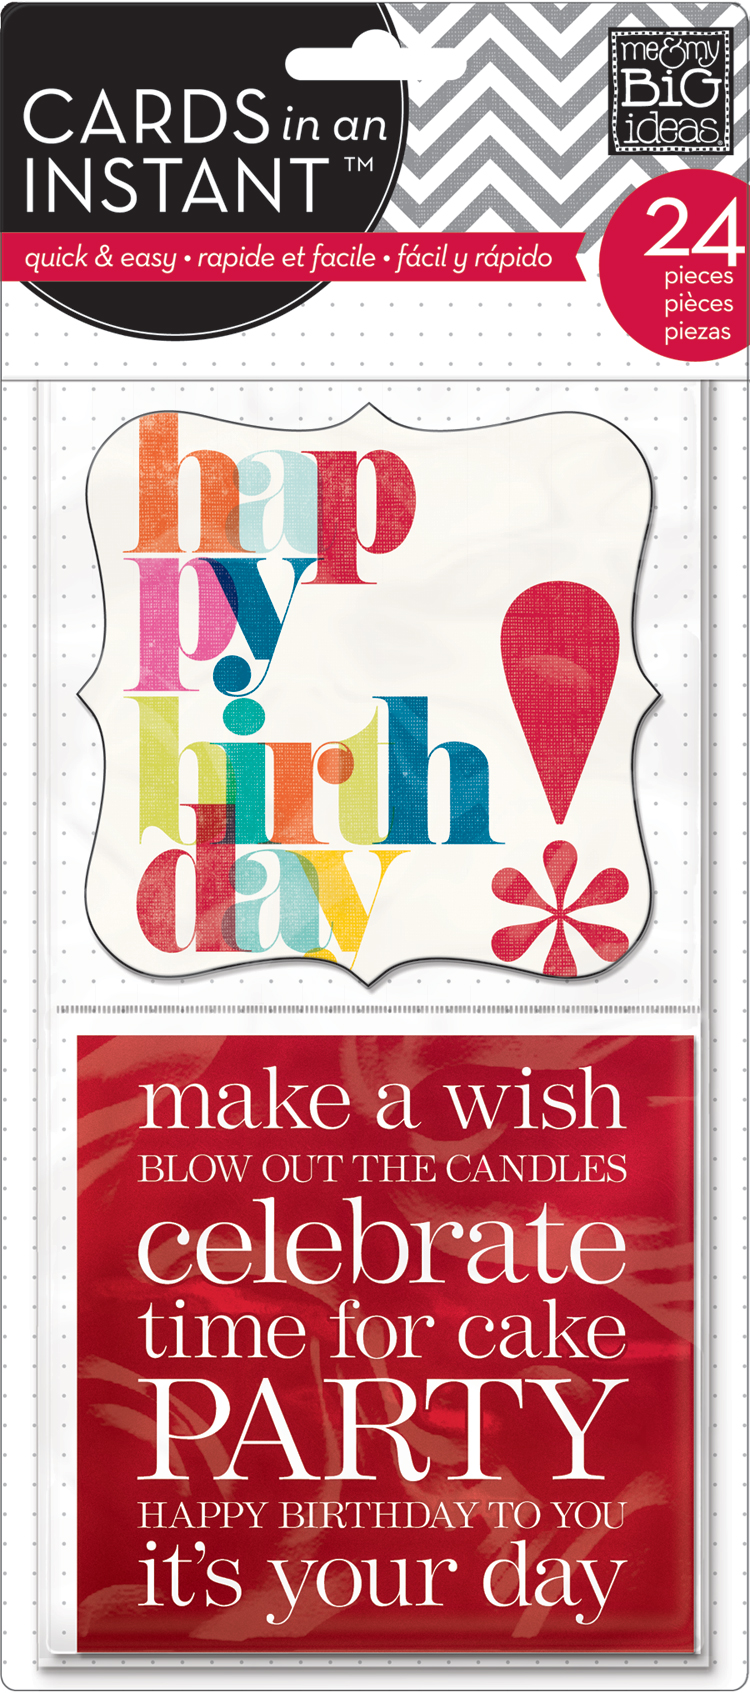 mambi:  CEM-14 Happy Birthday CARDS in an INSTANT™ cards for pocket pages.